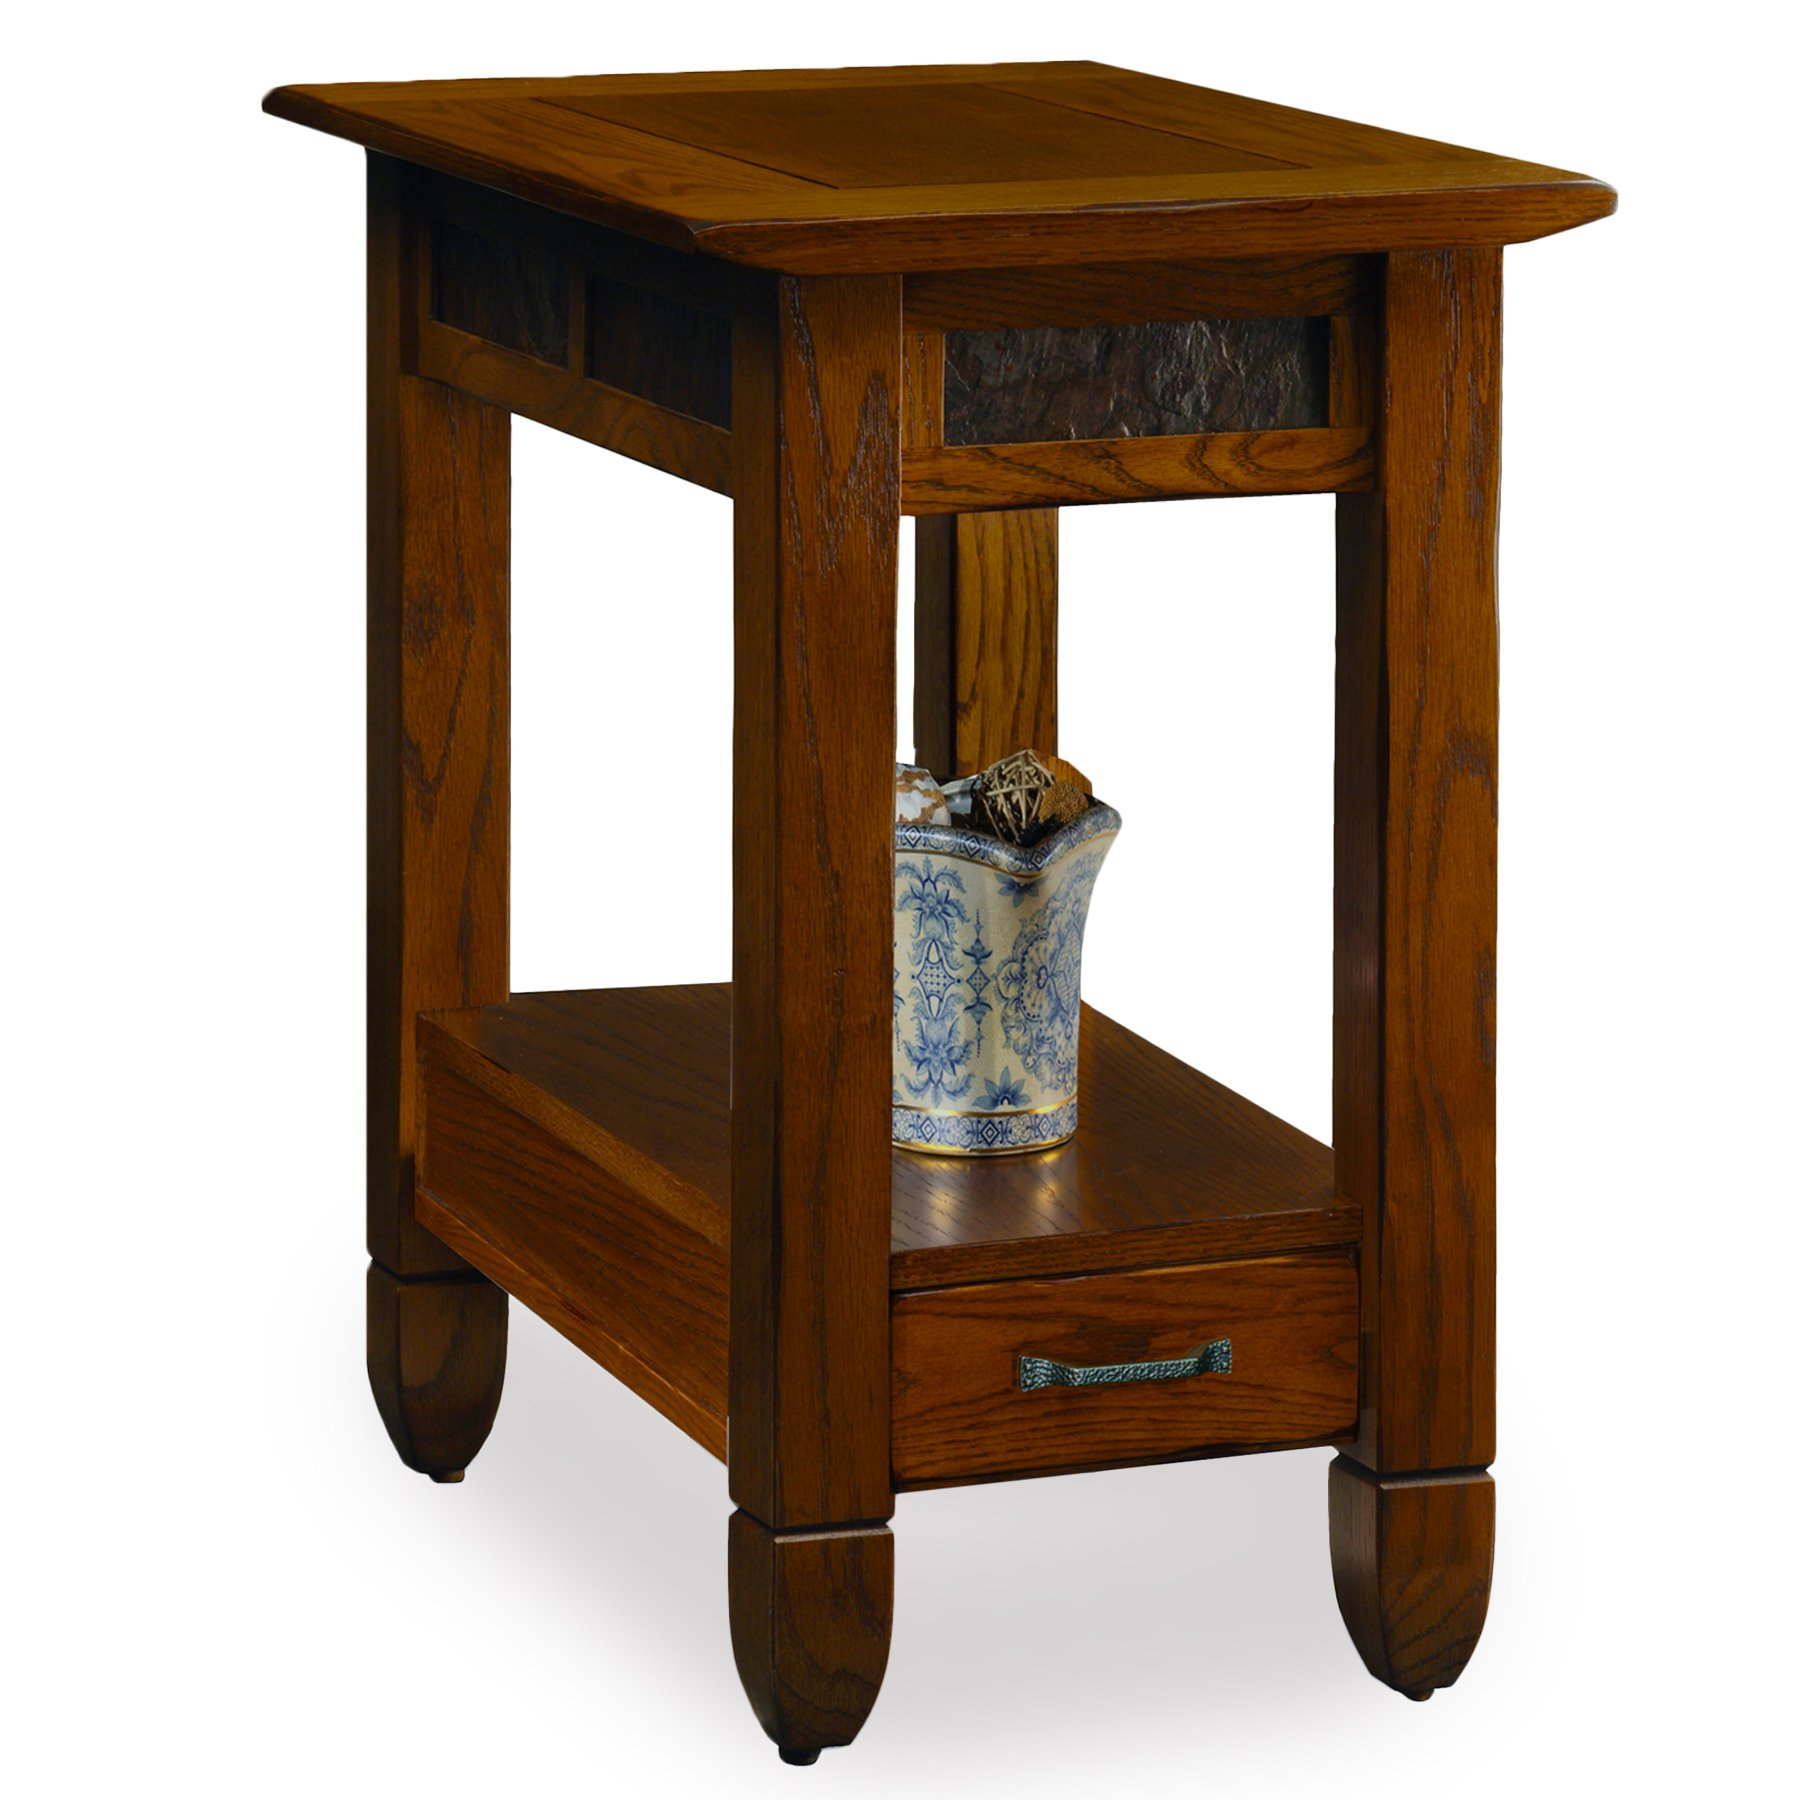 Slatestone  Oak Chairside End Table - Rustic Oak Finish by Leick Furniture